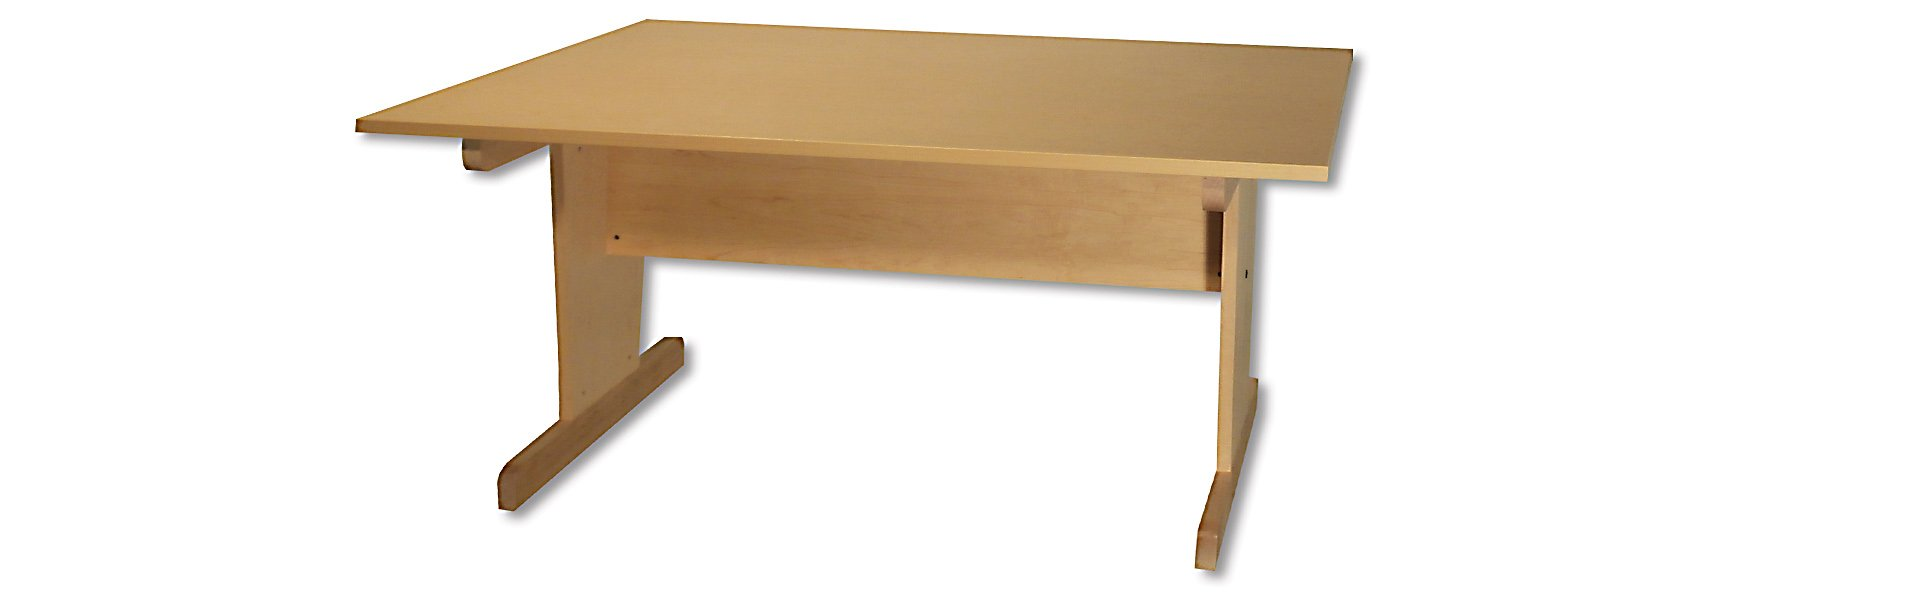 Corilam Maple Art Table